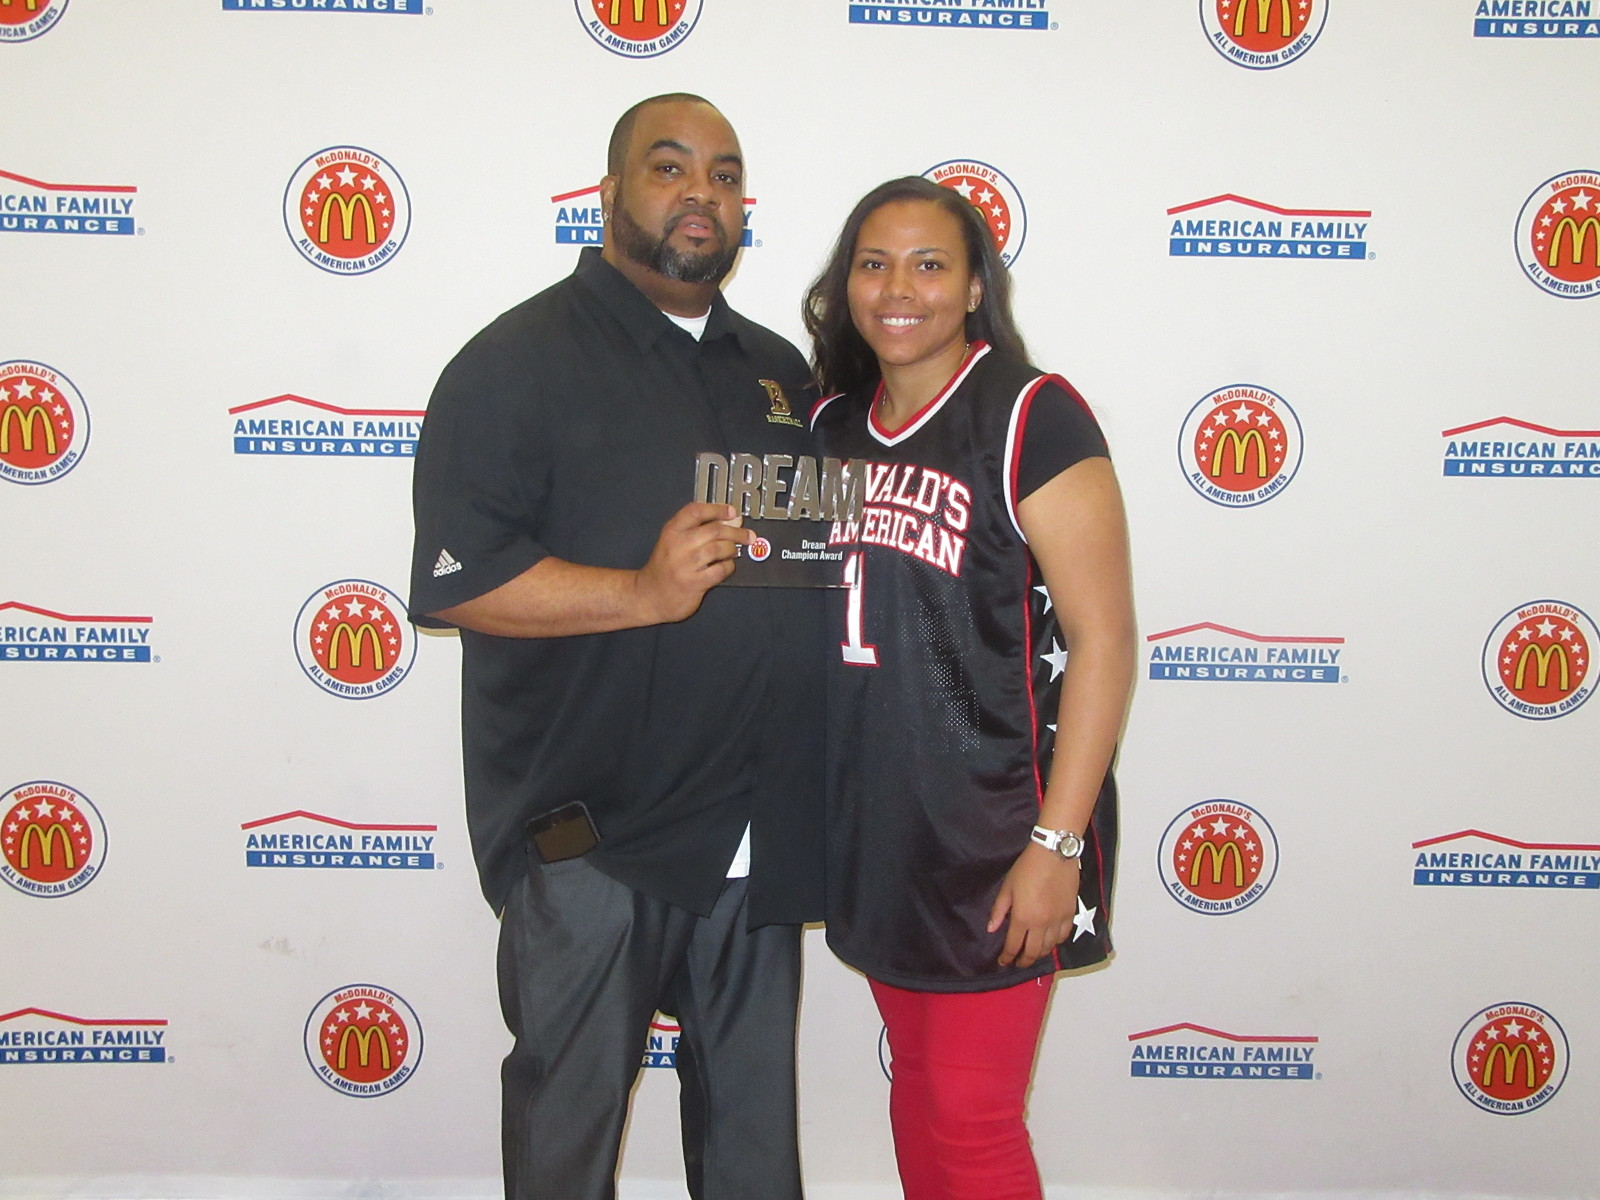 Destiny presented her coach and guardian, Marlon Wells, with the Dream Champion Award. (Photo: McDAAG)